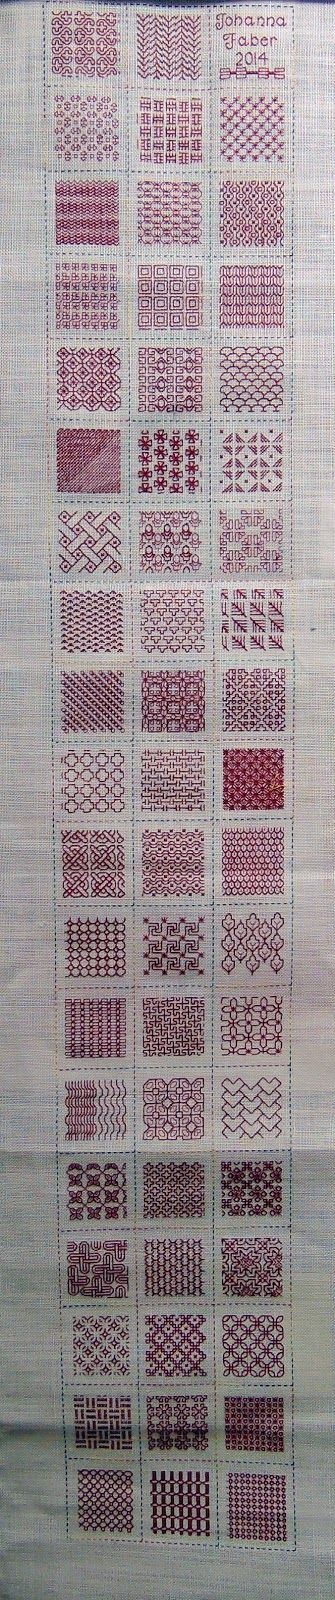 Lovely Stitch Sampler: